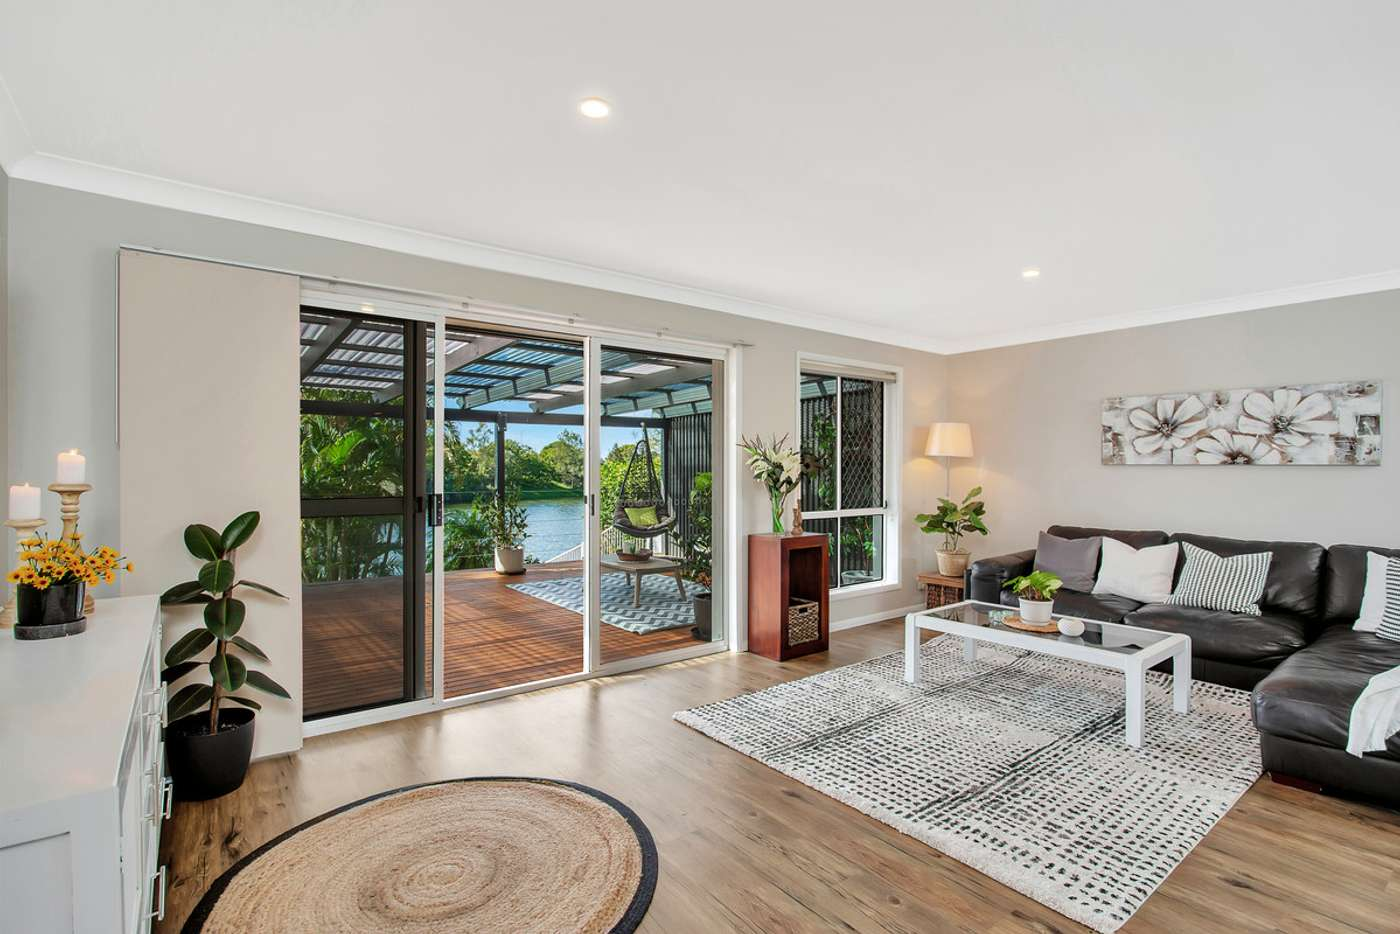 Fifth view of Homely house listing, 22 Emerton Crescent, Robina QLD 4226